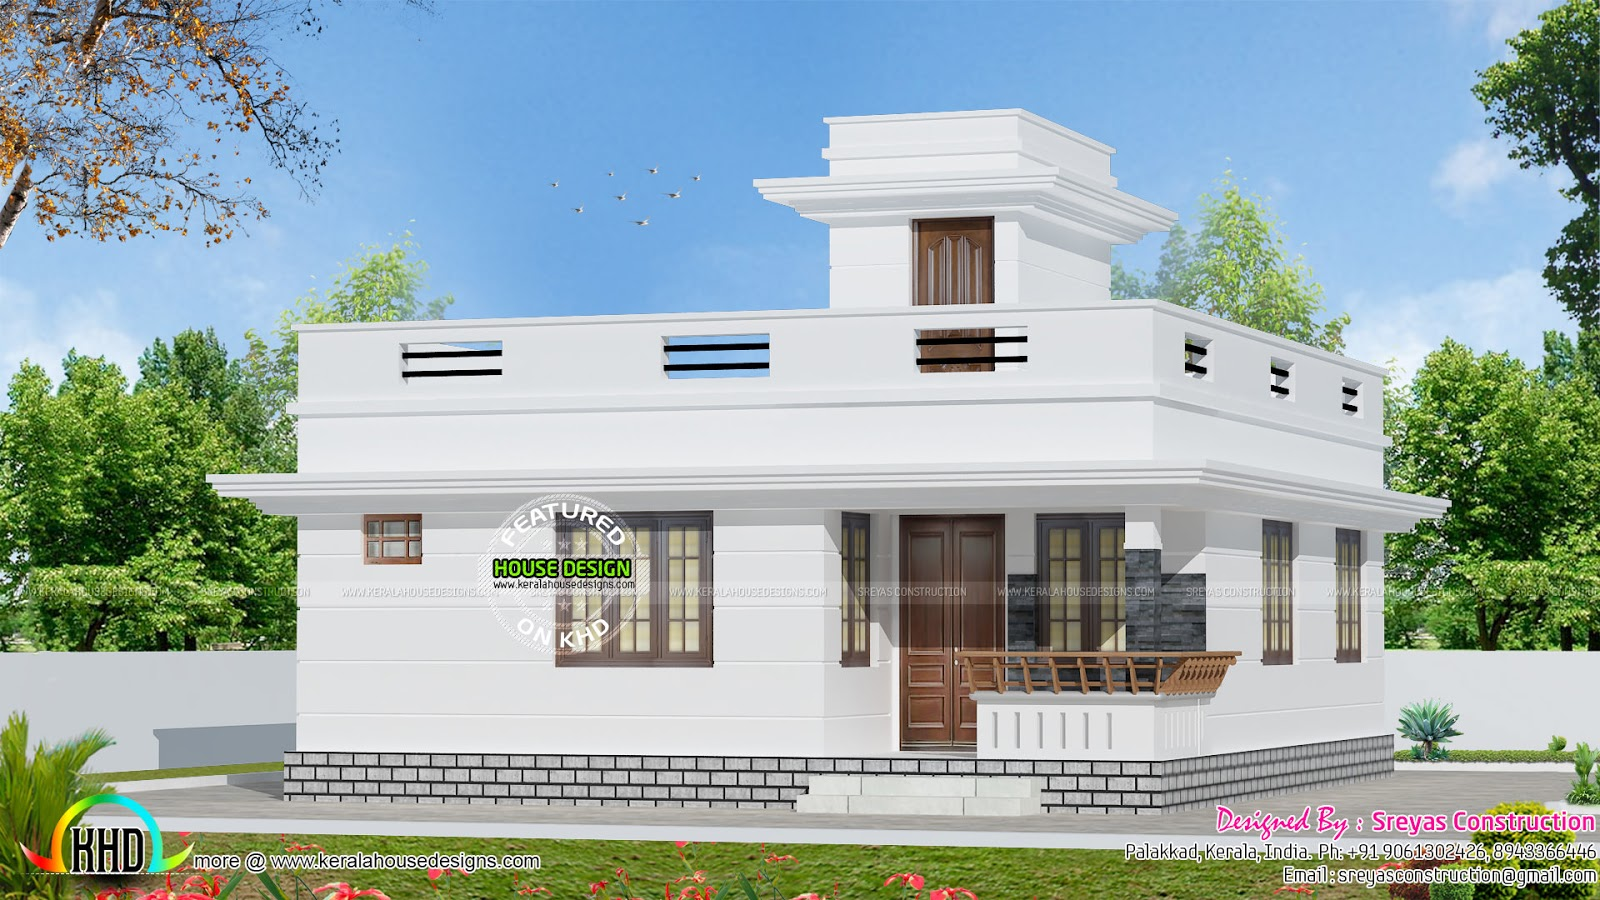 882 sq ft small house architecture kerala home design for Best architecture home design in india